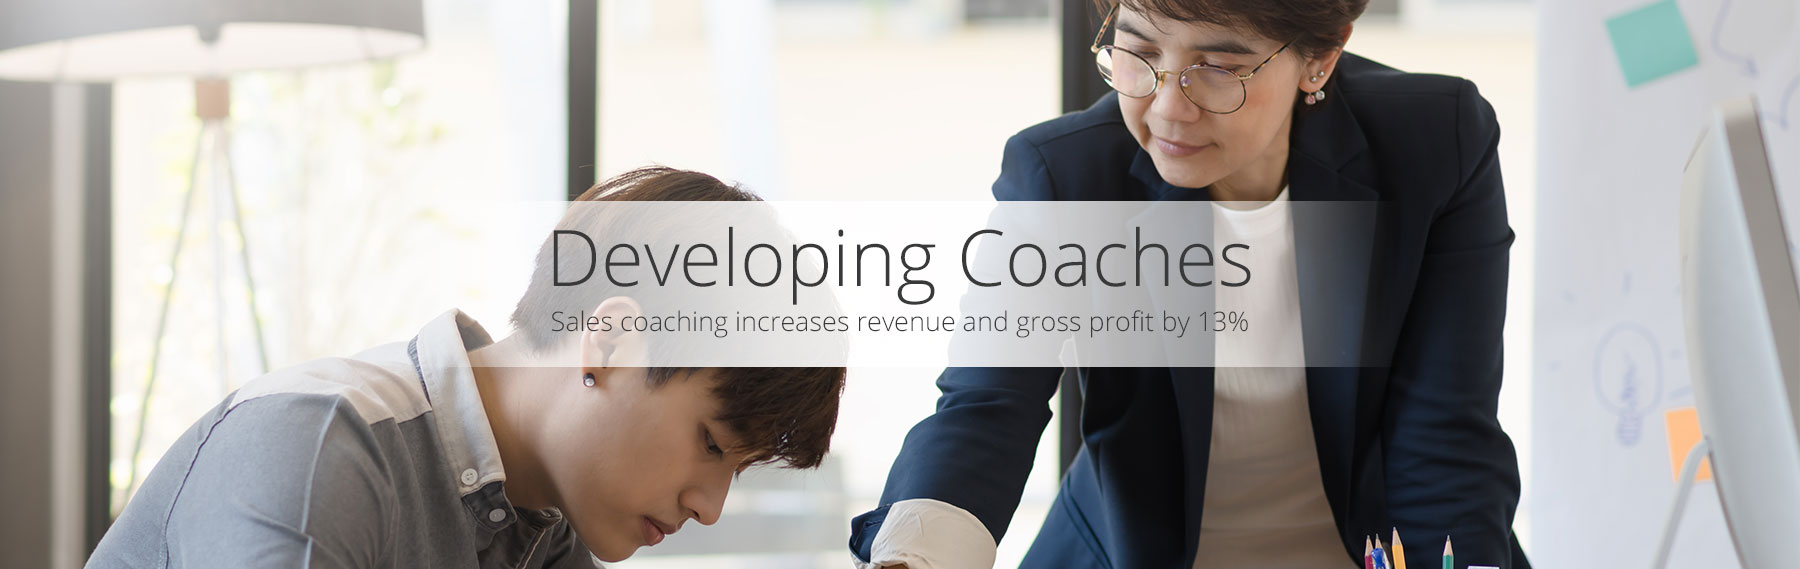 Case Study Sales Coaching